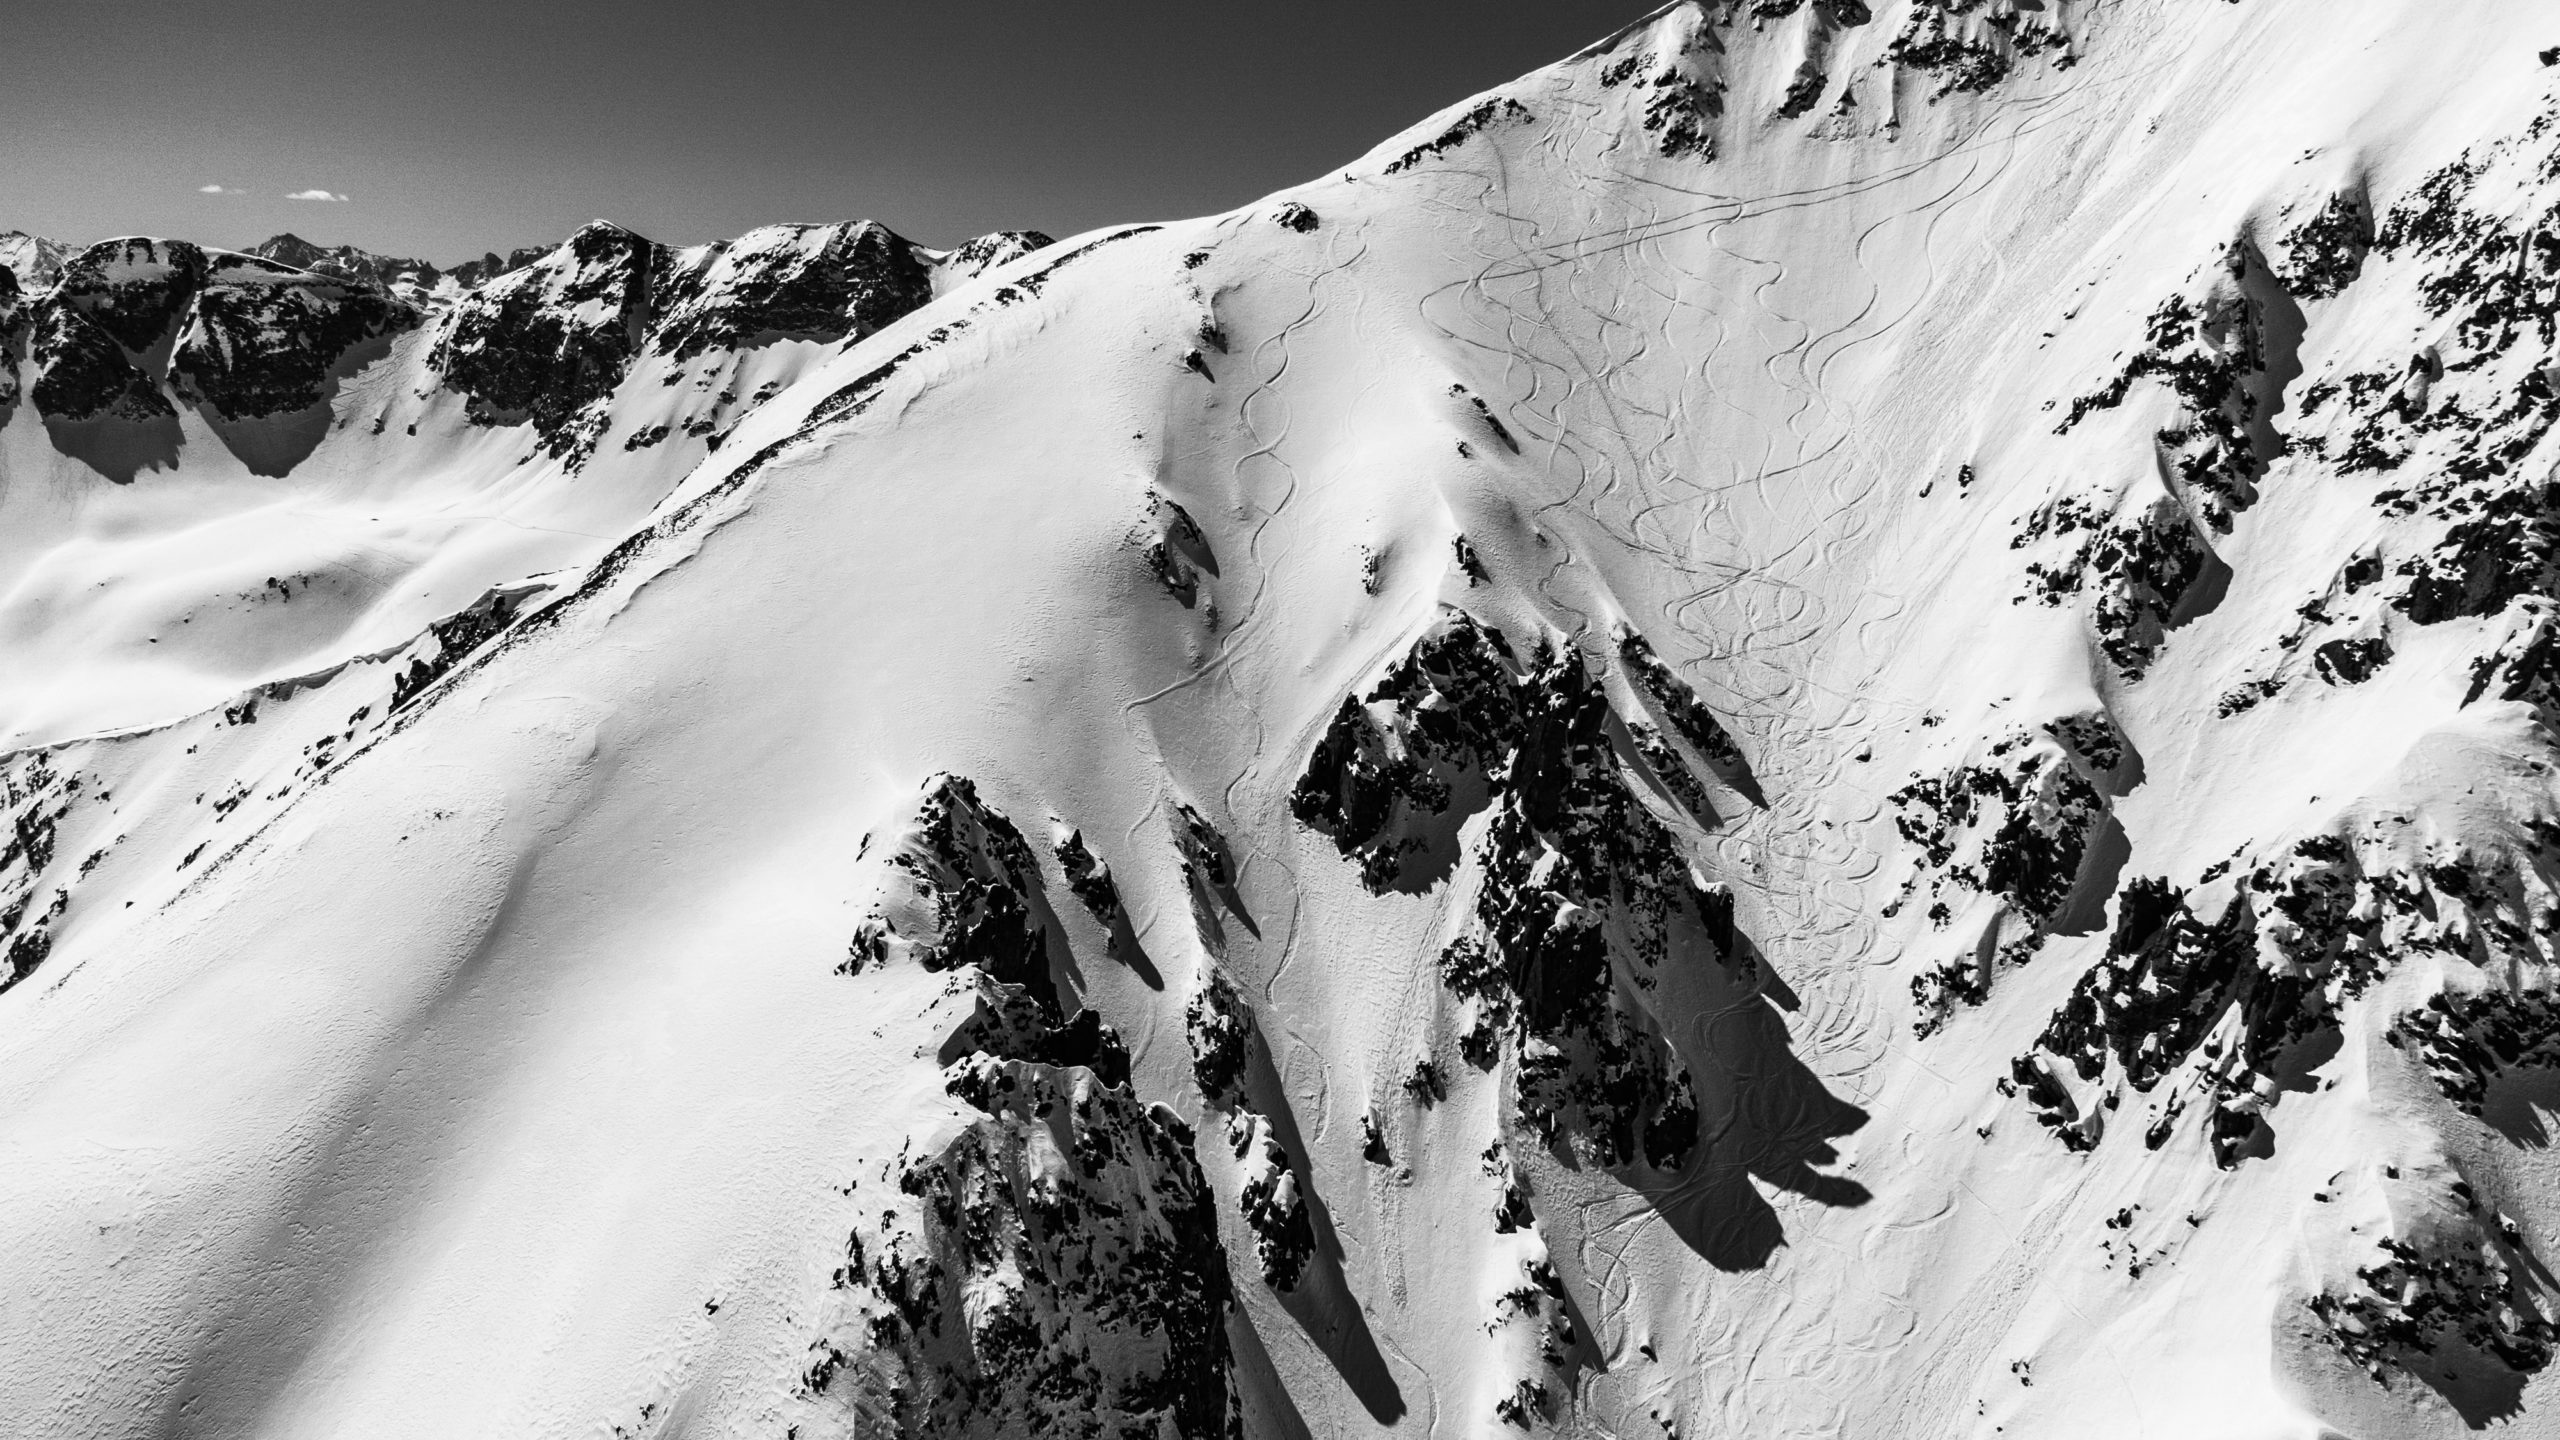 backcountry skiing black and white